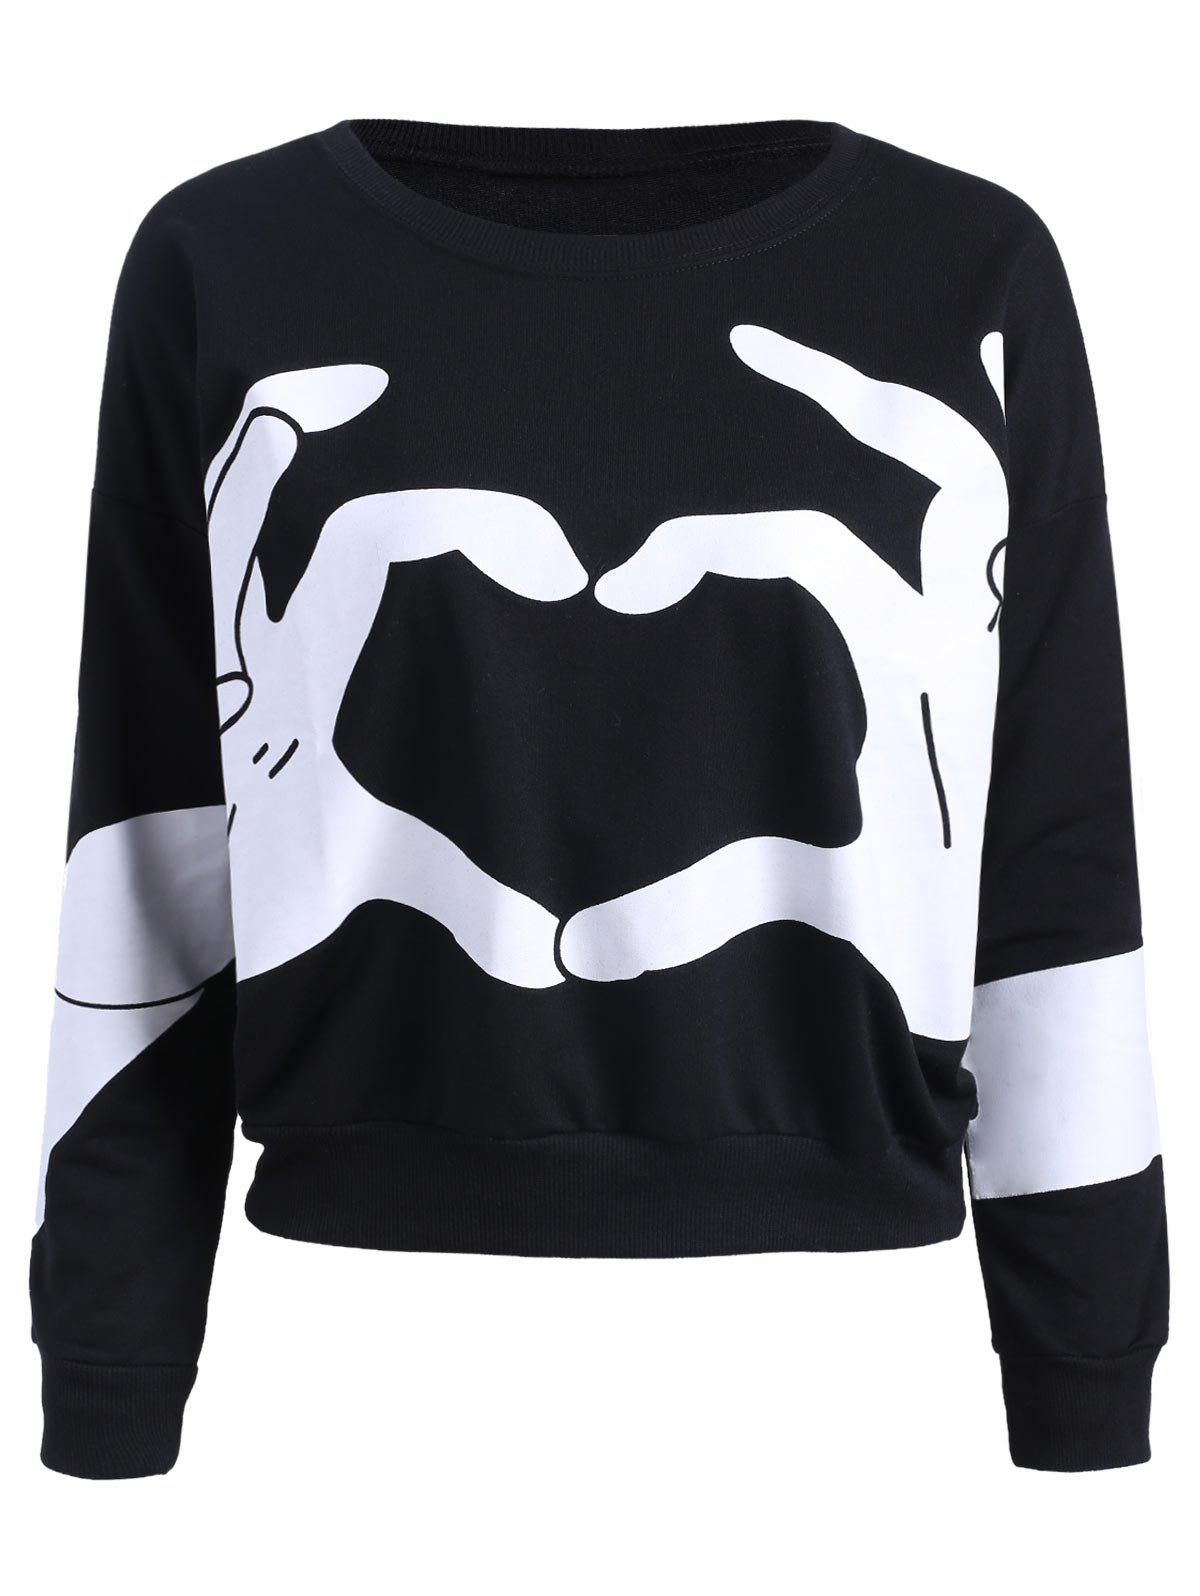 Crew Neck Gesture Print Sweatshirt - BLACK ONE SIZE